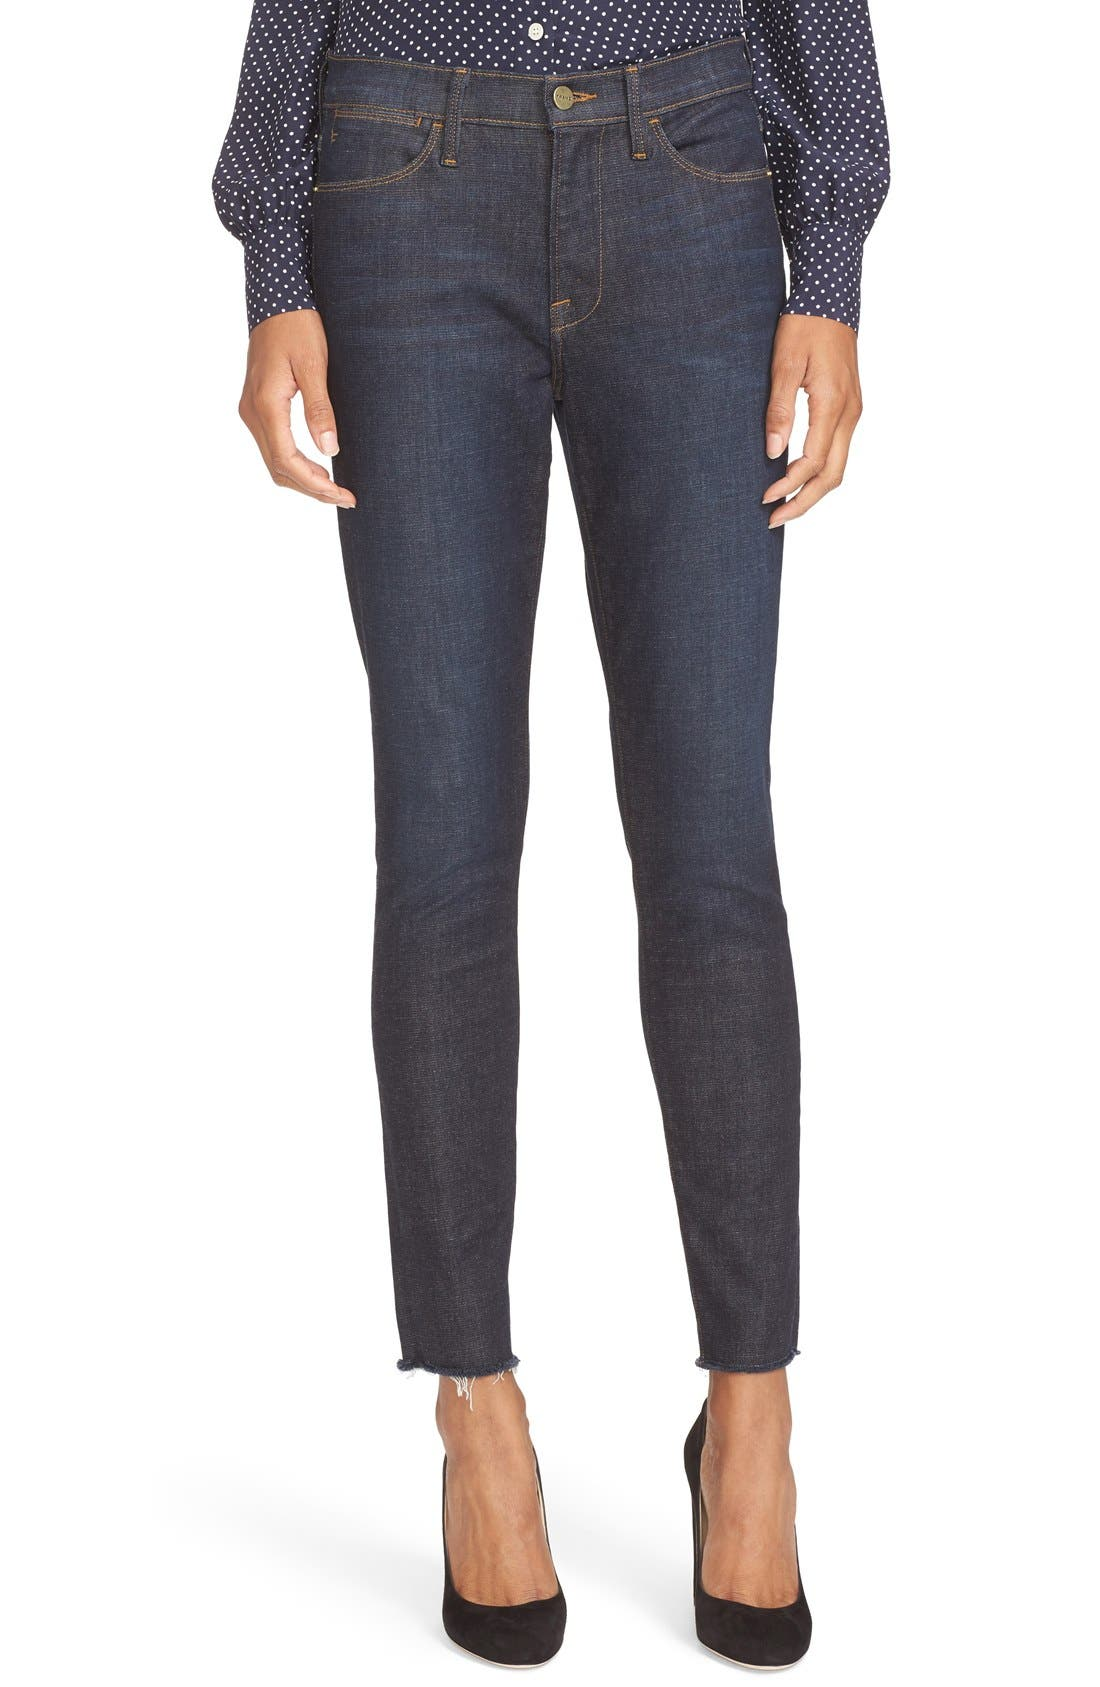 Main Image - FRAME High Waist Skinny Jeans (Saltair) (Nordstrom Exclusive)